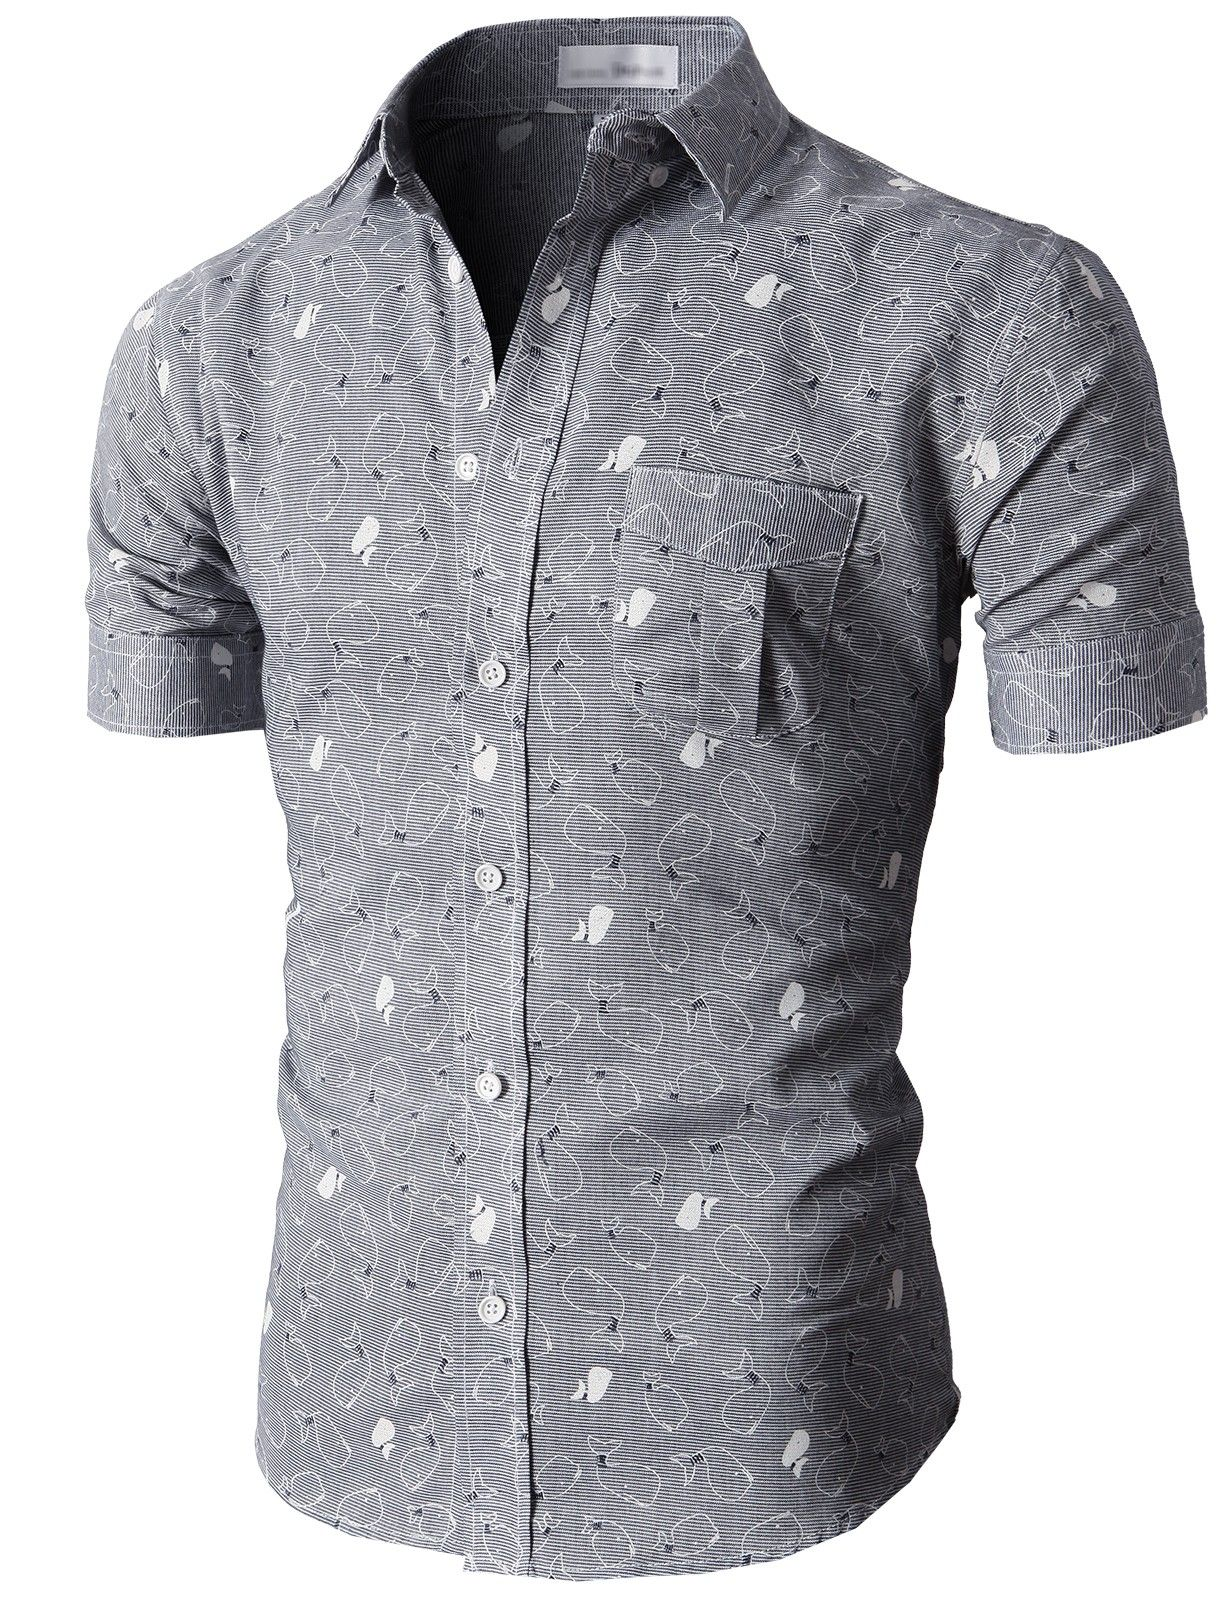 Doublju Casual Button-down Shirts Short Sleeve (KMTSTS018) #doublju